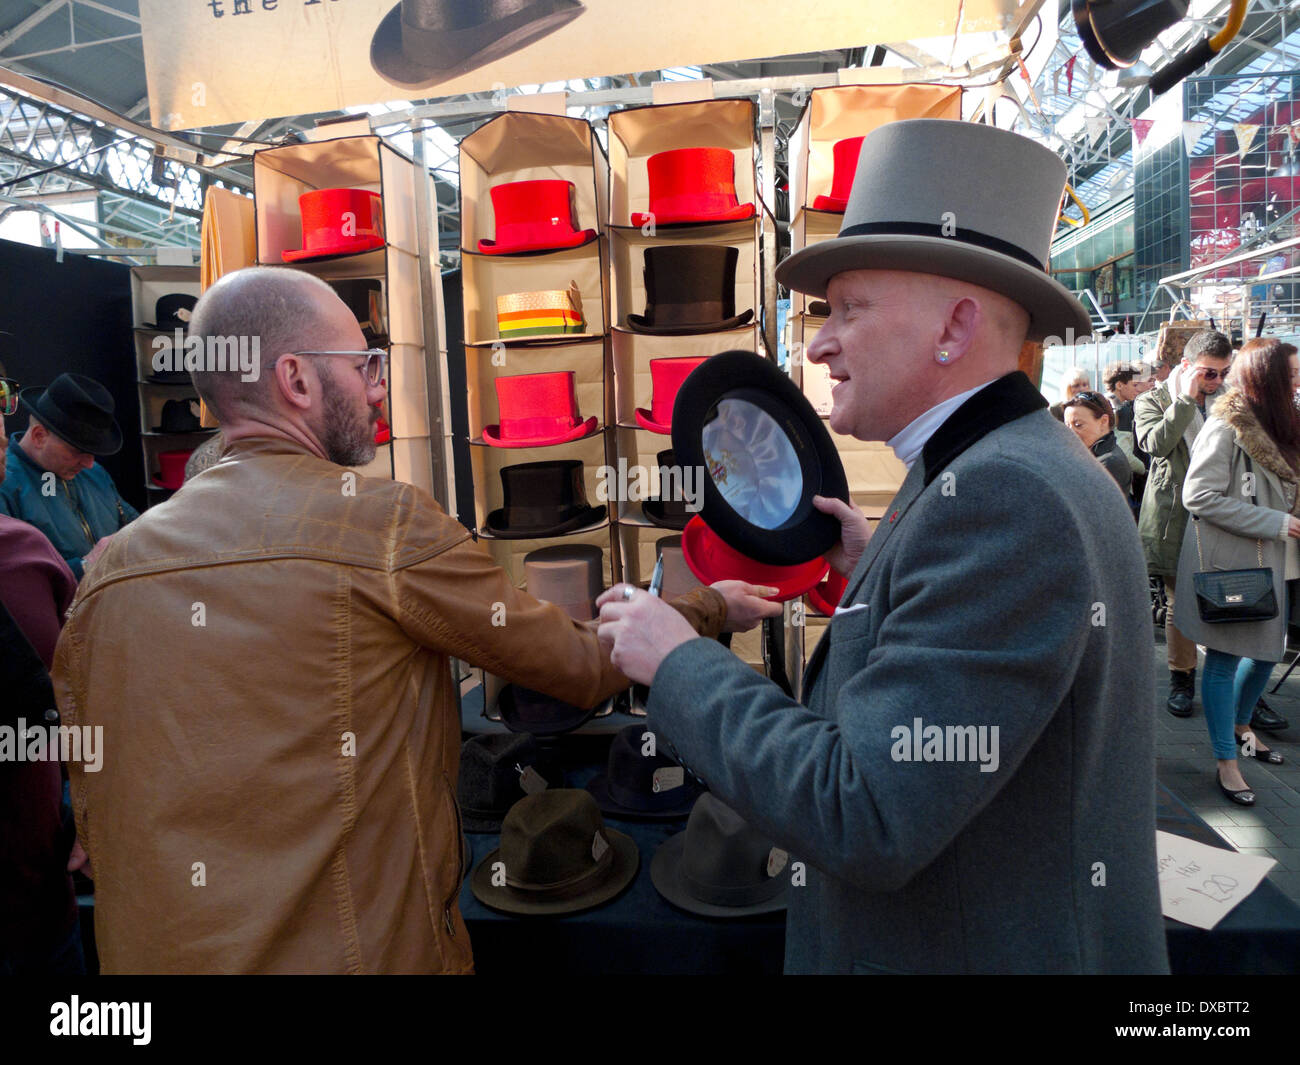 A hat seller selling top hats in Victorian Spitalfields Market near Brick Lane and Liverpool Street Station in East London E1 England UK KATHY DEWITT - Stock Image